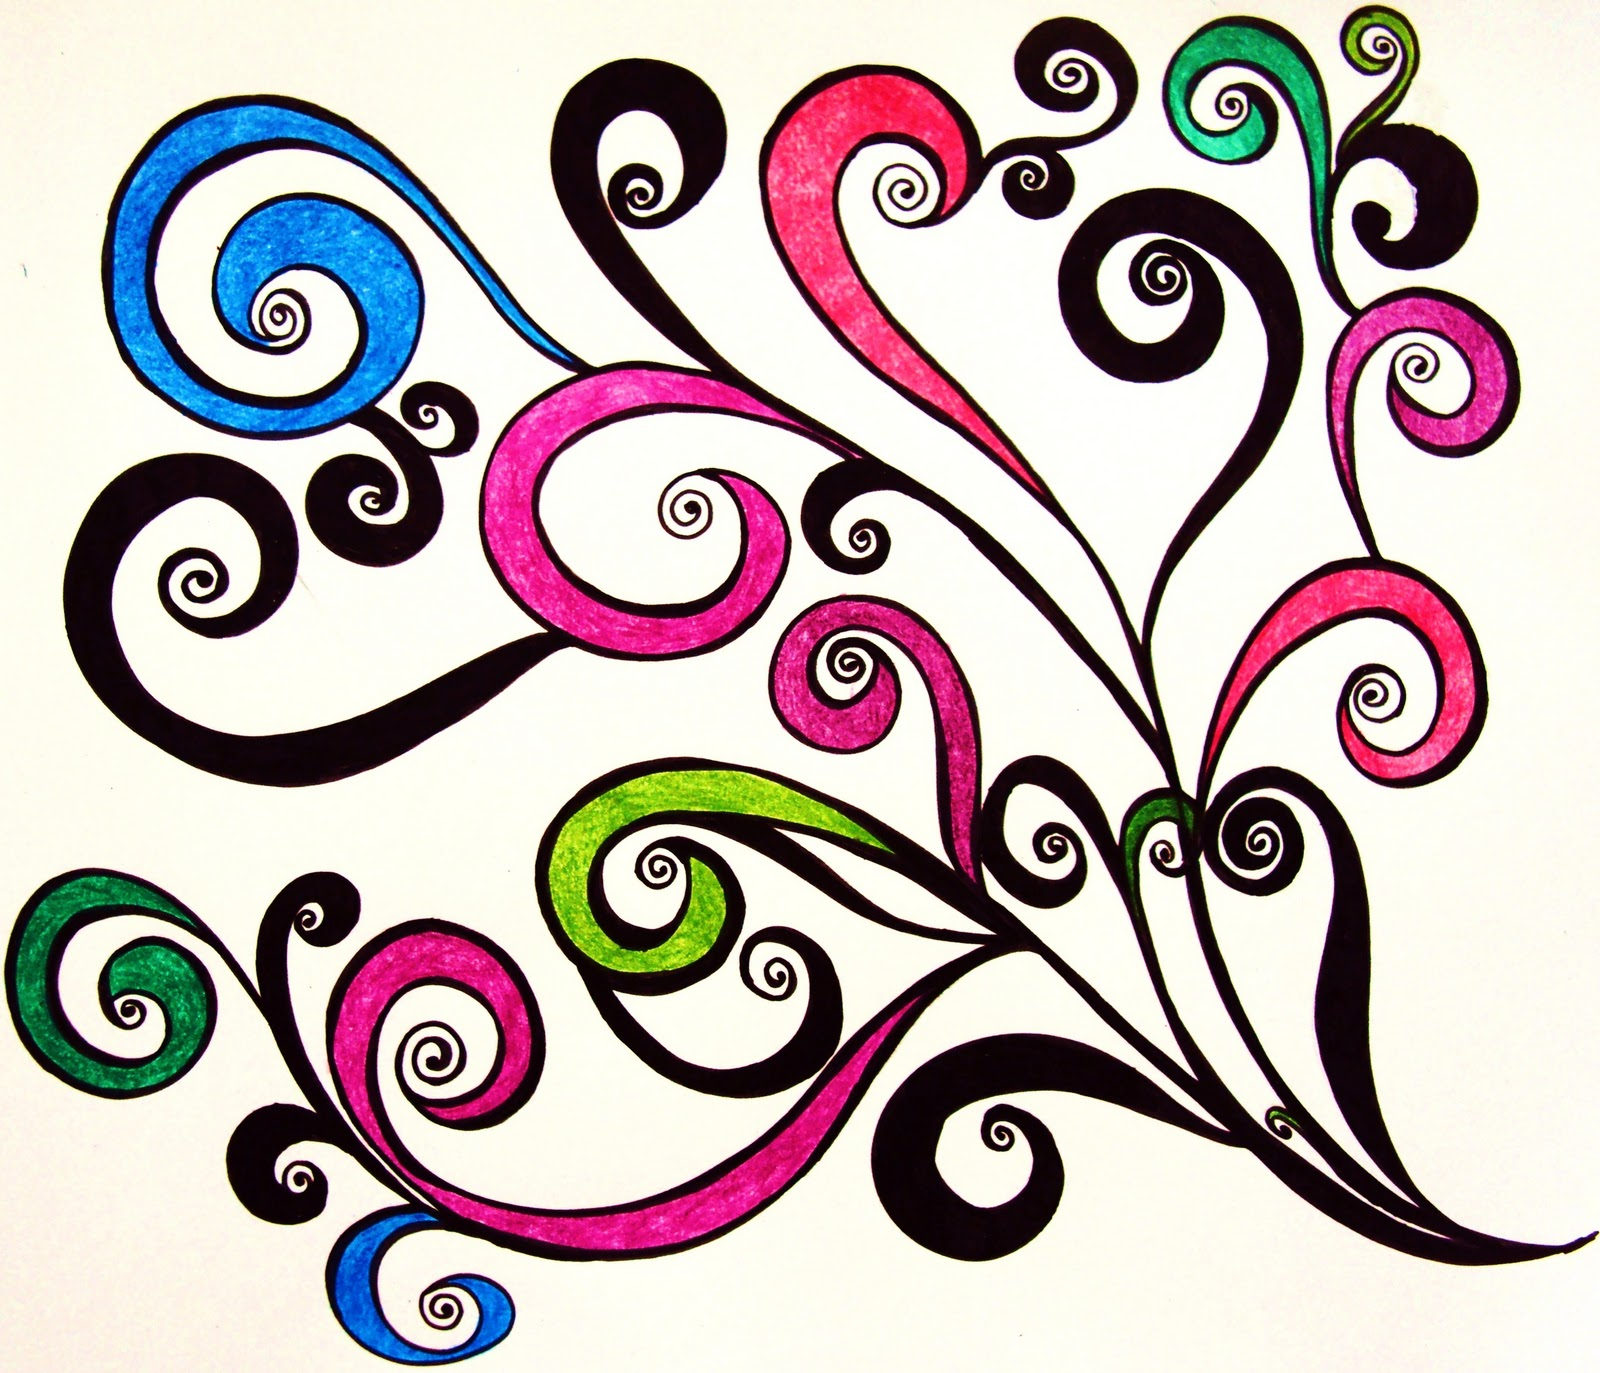 Swirl Art Designs : Cool swirly designs patterns images